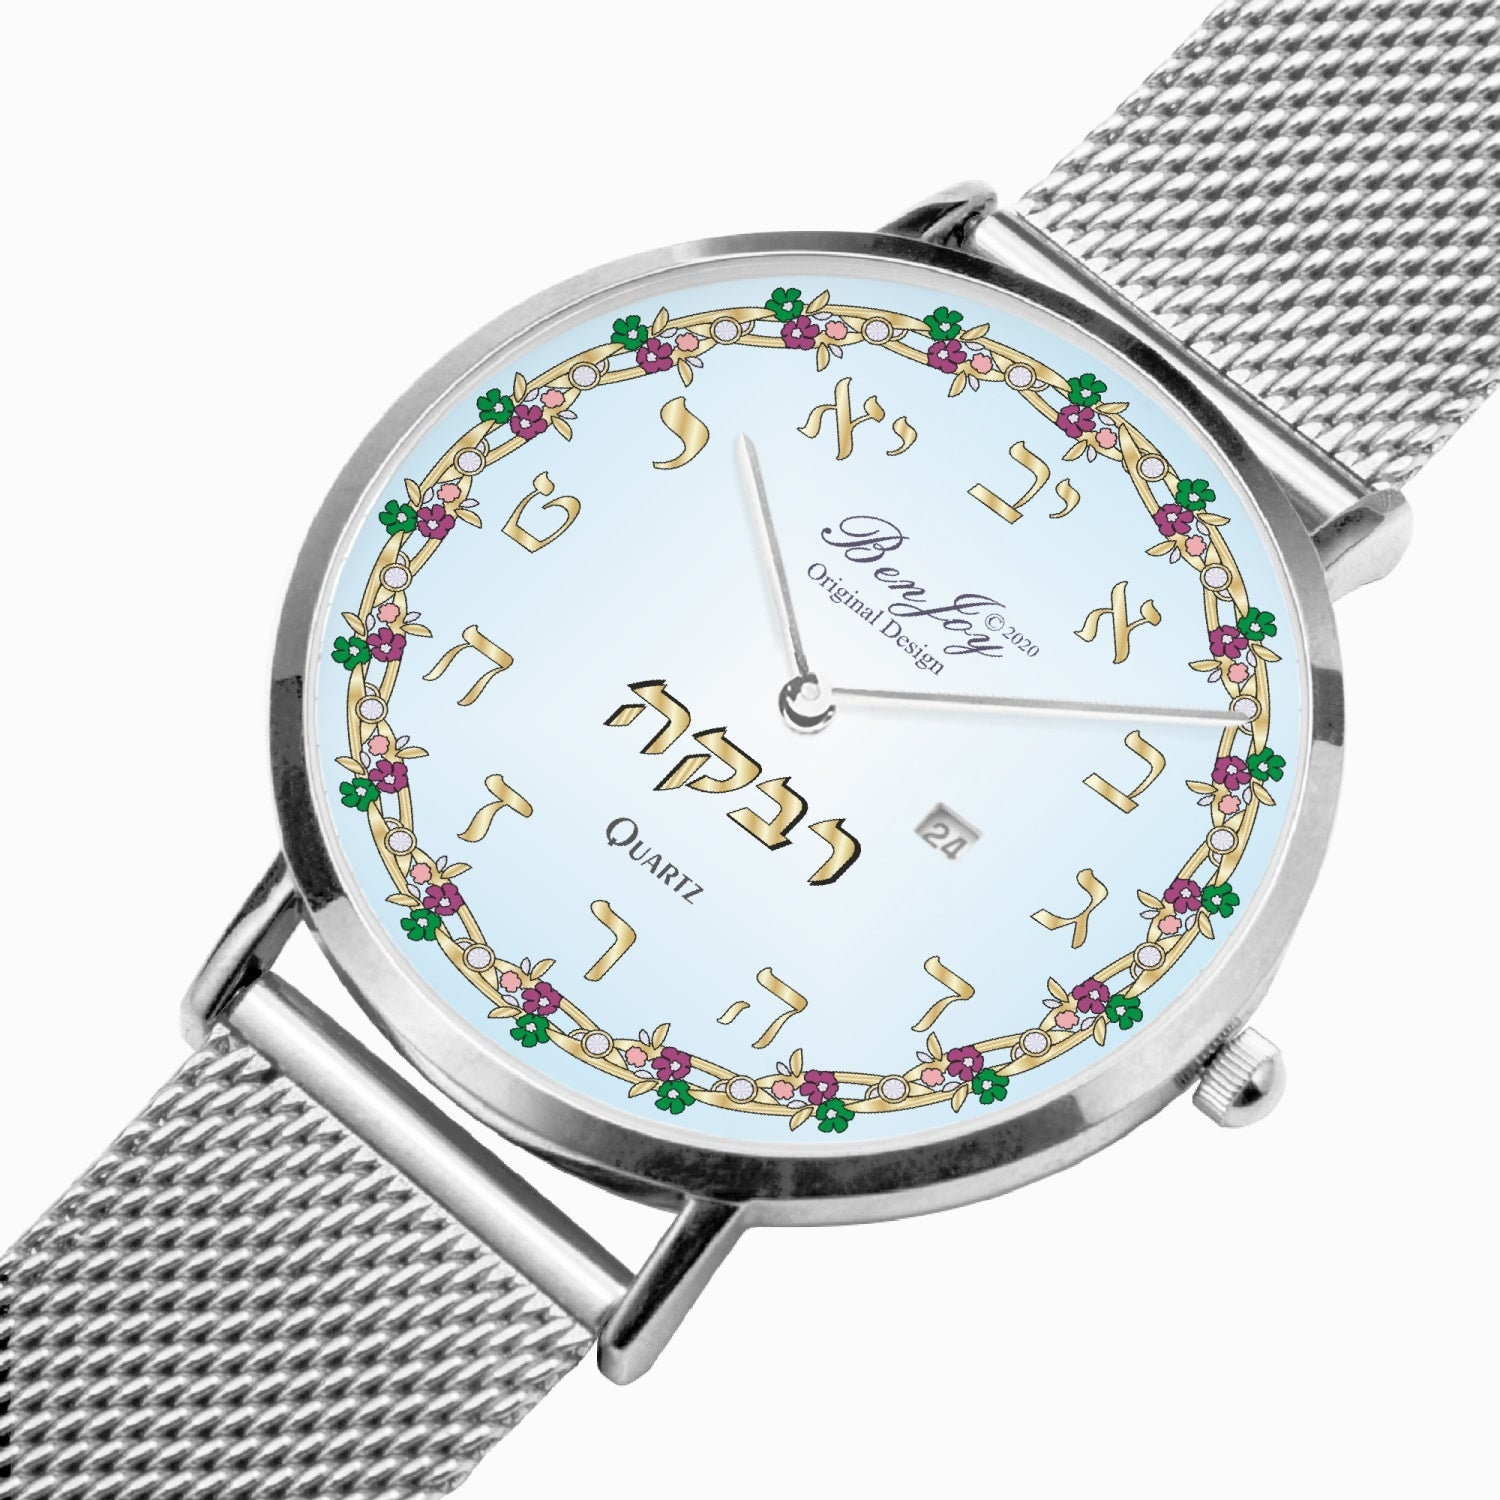 Judaica (Name) Stainless Steel Perpetual Calendar Watch By BenJoy